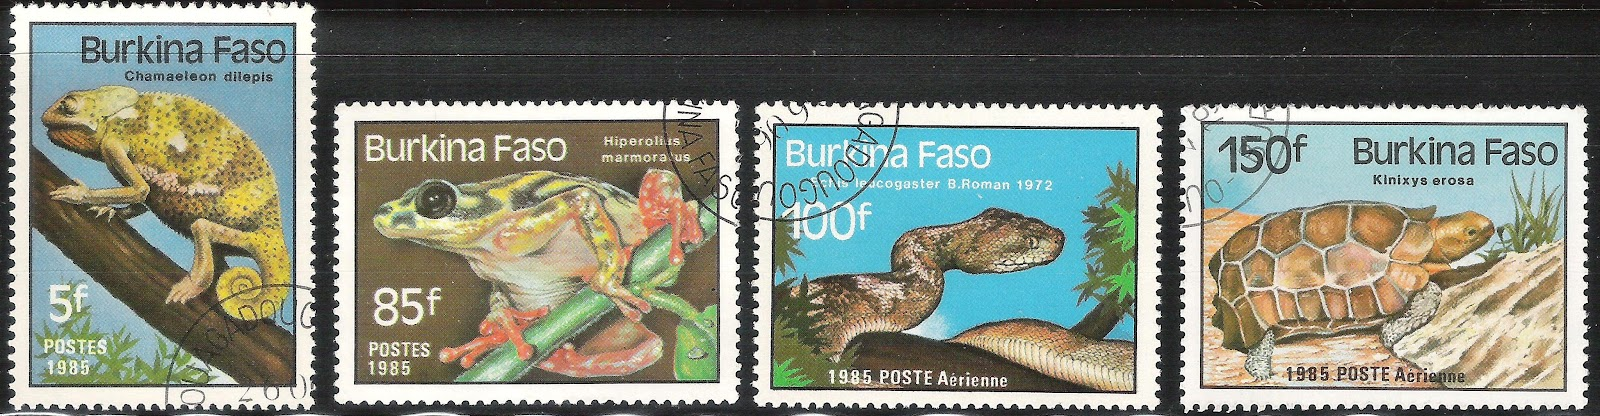 My Postage Stamps Collection Burkina Faso Pt 1